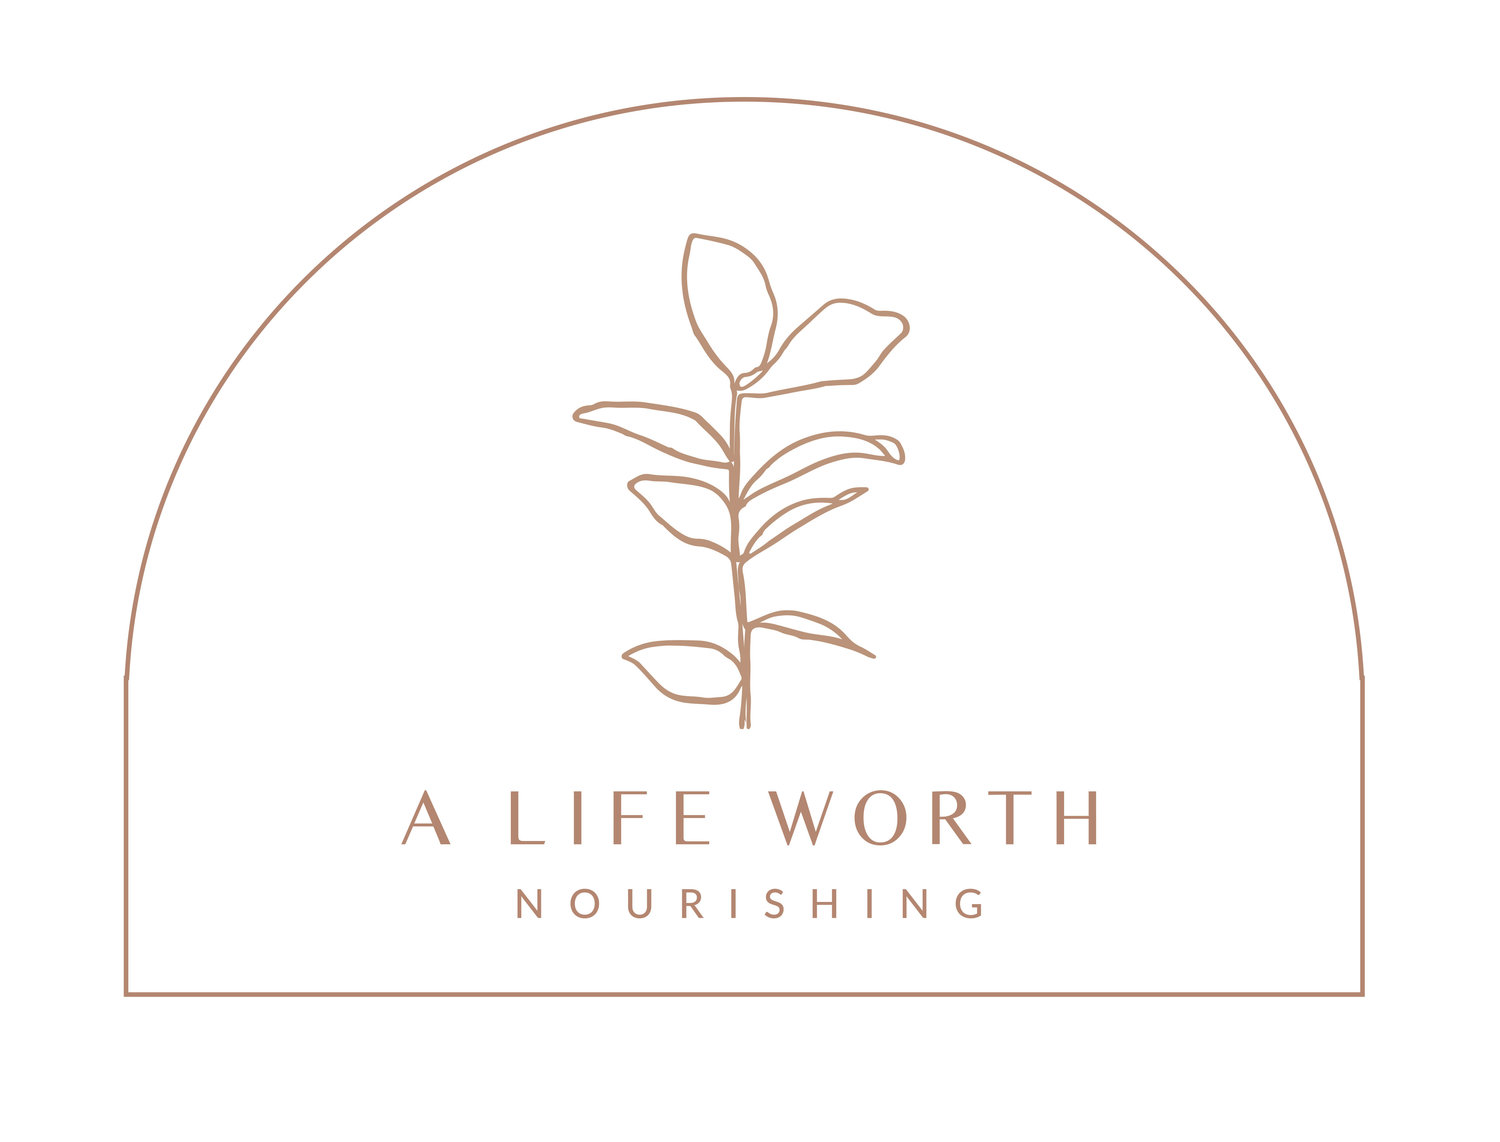 A Life Worth Nourishing